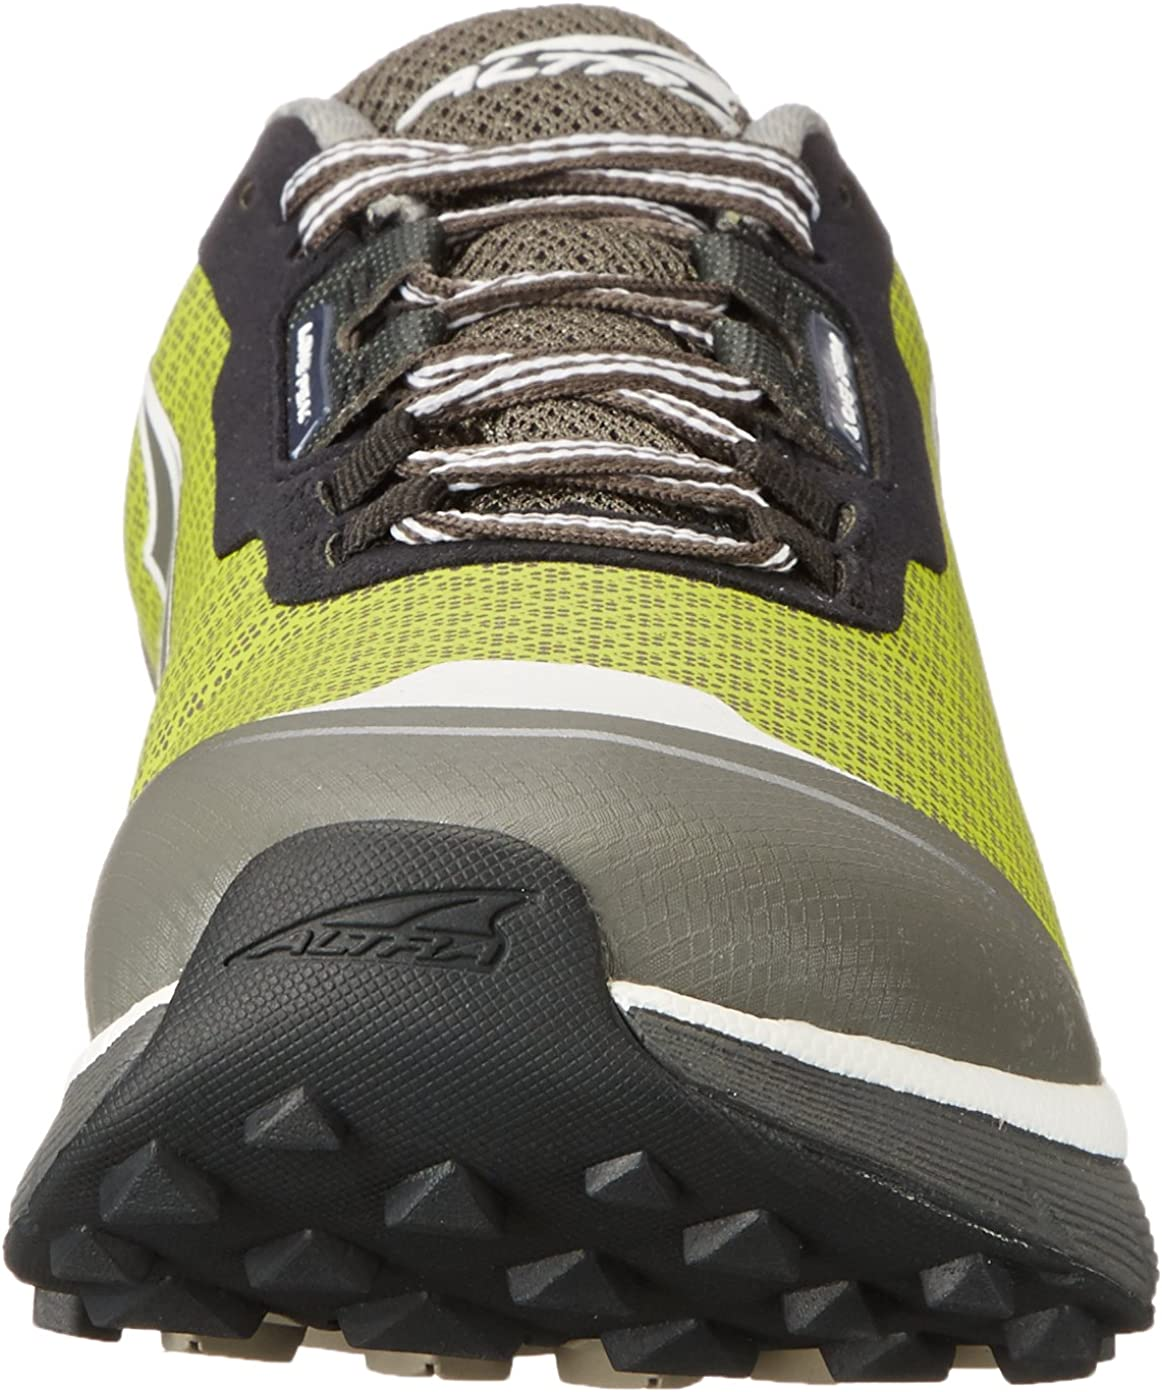 Altra Running Womens Lone Peak 2.0 Polartec Shoe